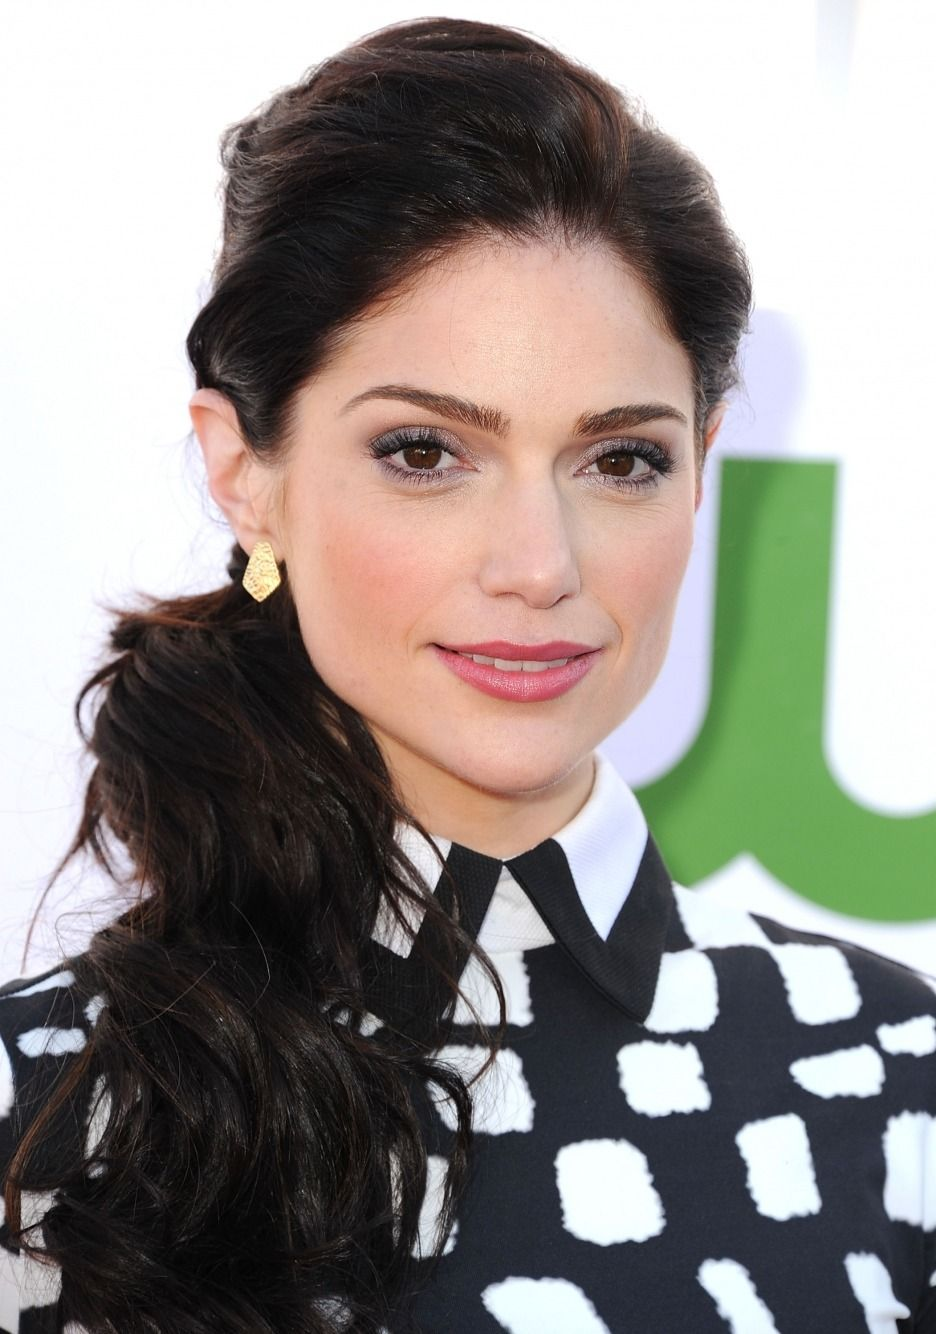 Selfie Janet Montgomery nudes (97 photo), Pussy, Hot, Feet, butt 2006